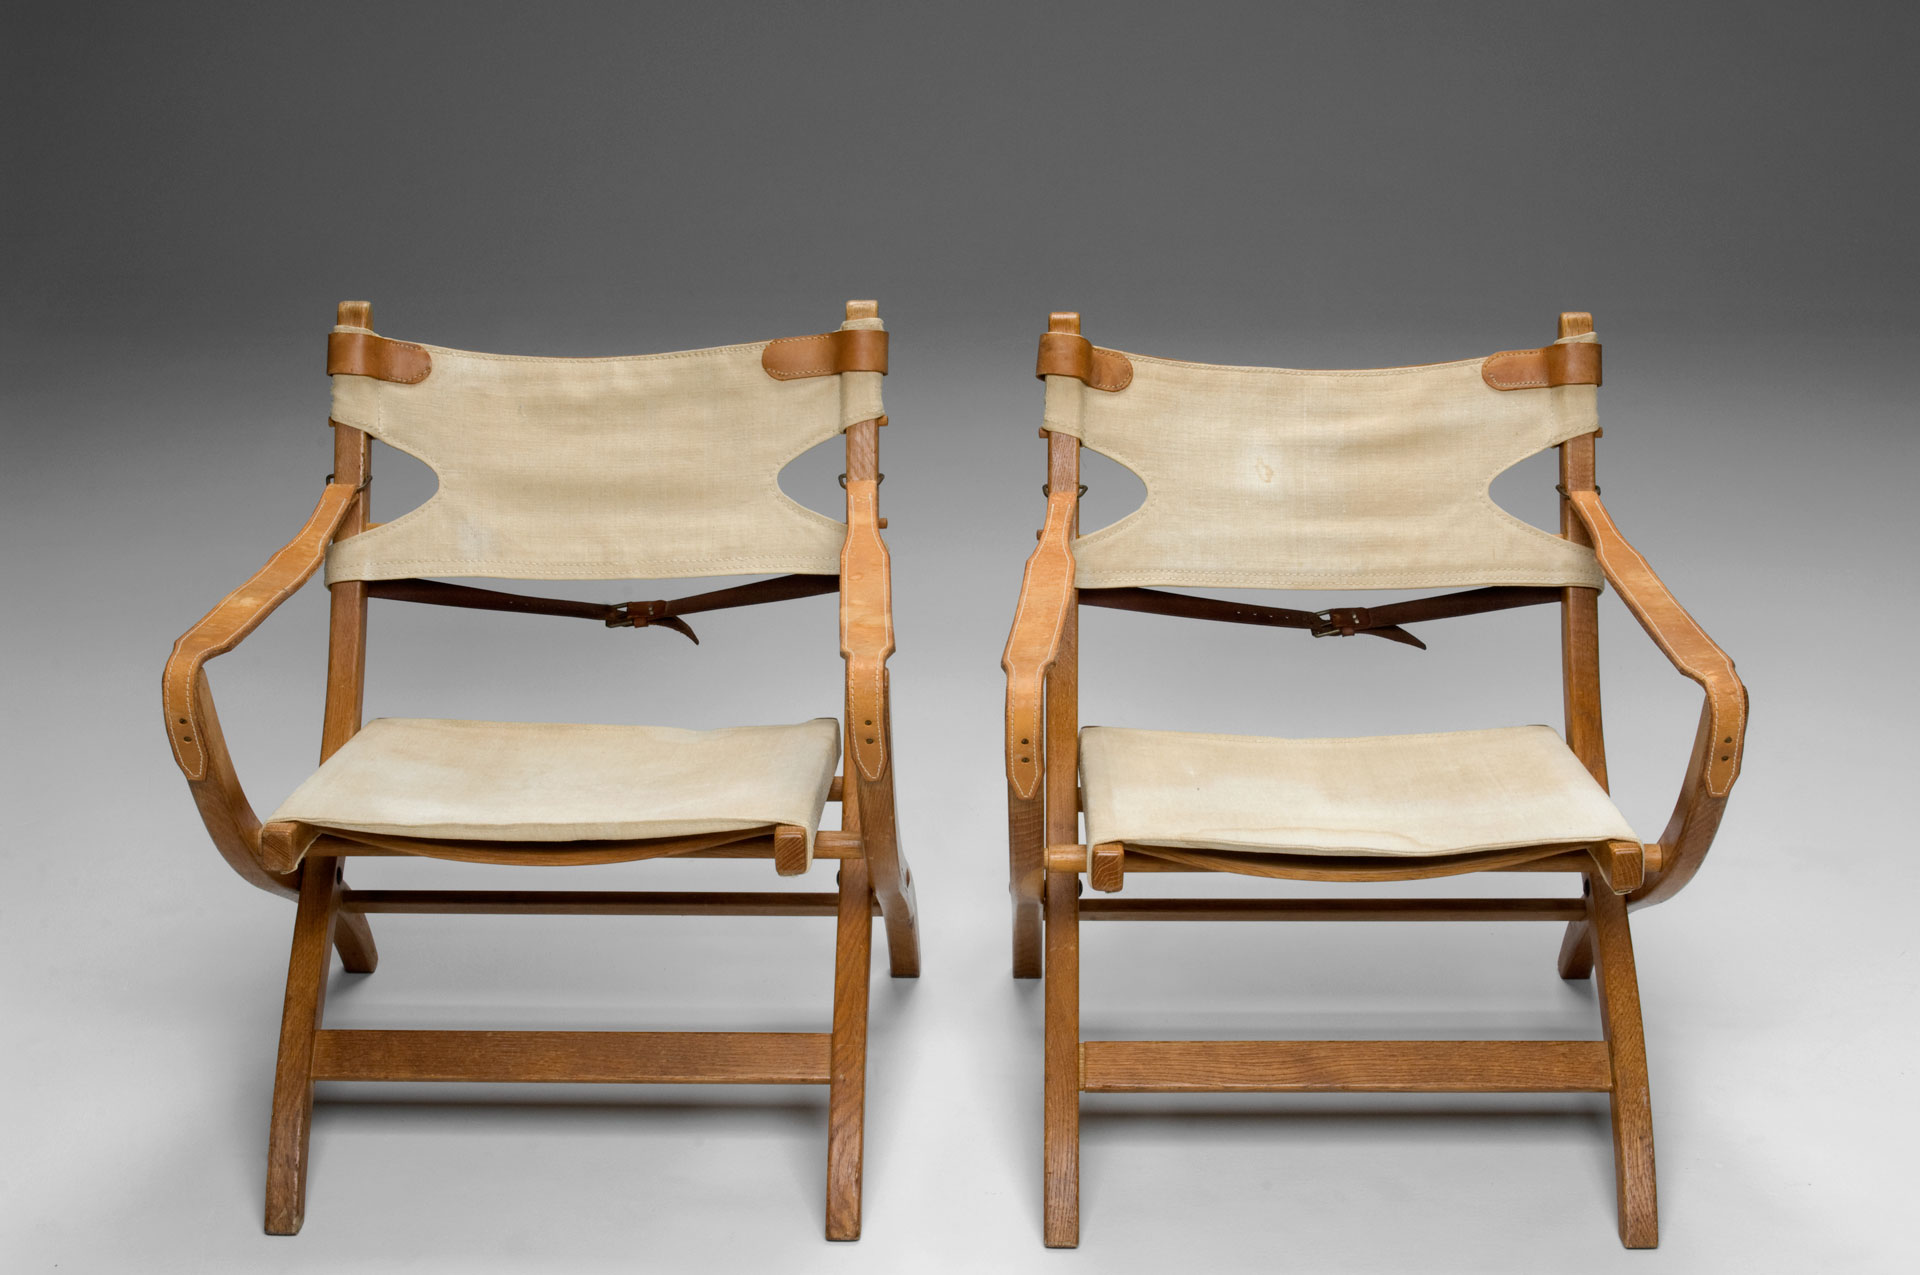 Jacksons Pair of Safari Chairs Poul Hundevad